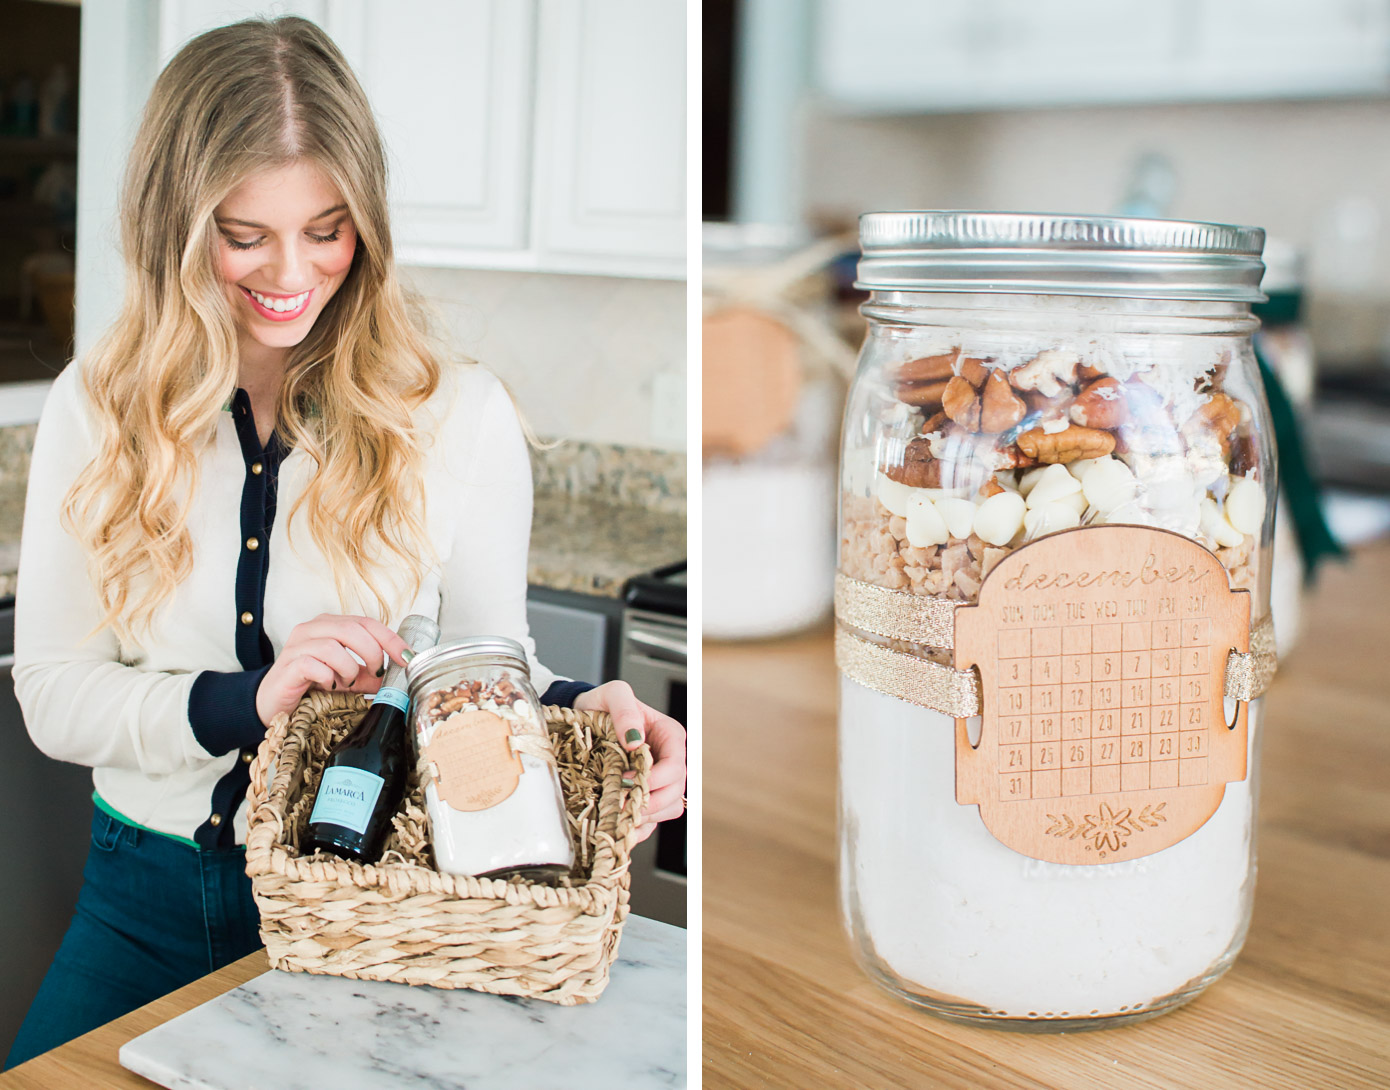 Hostess Gifts from The Fresh Market | Easy, Edible Holiday Gifts | Louella Reese Life & Style Blog